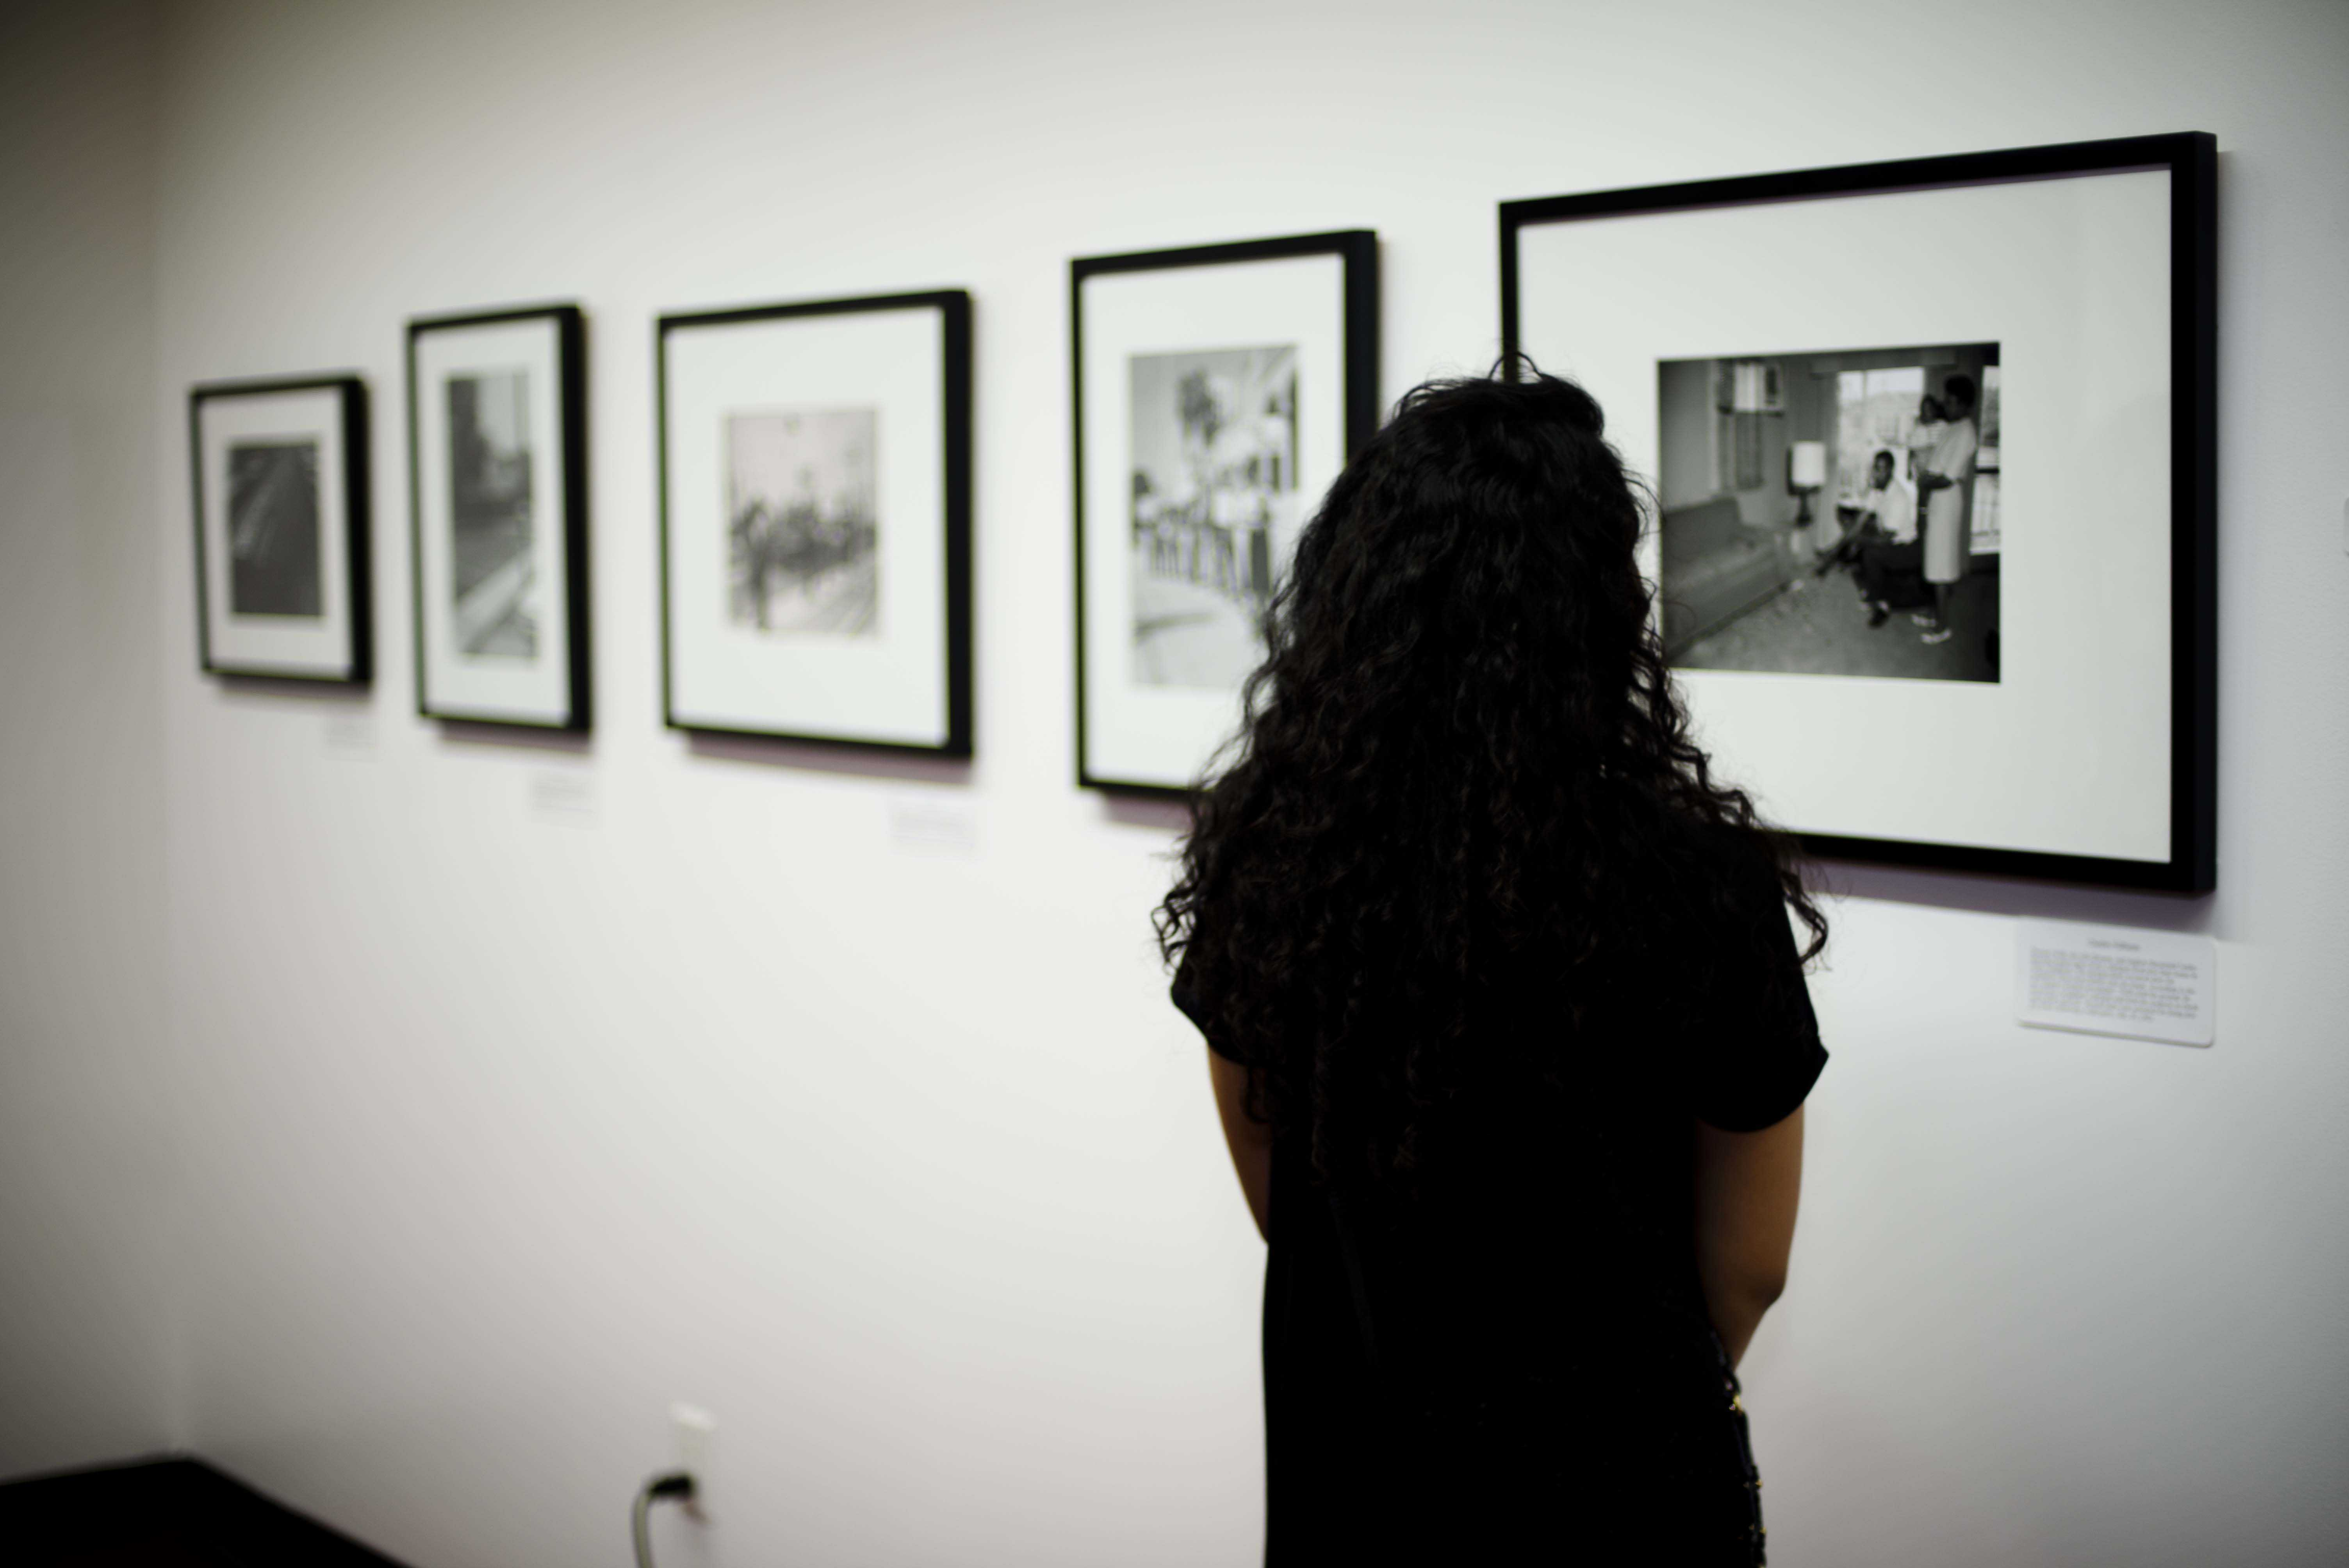 Civil Rights Movement Exhibition Opens in Los Angeles